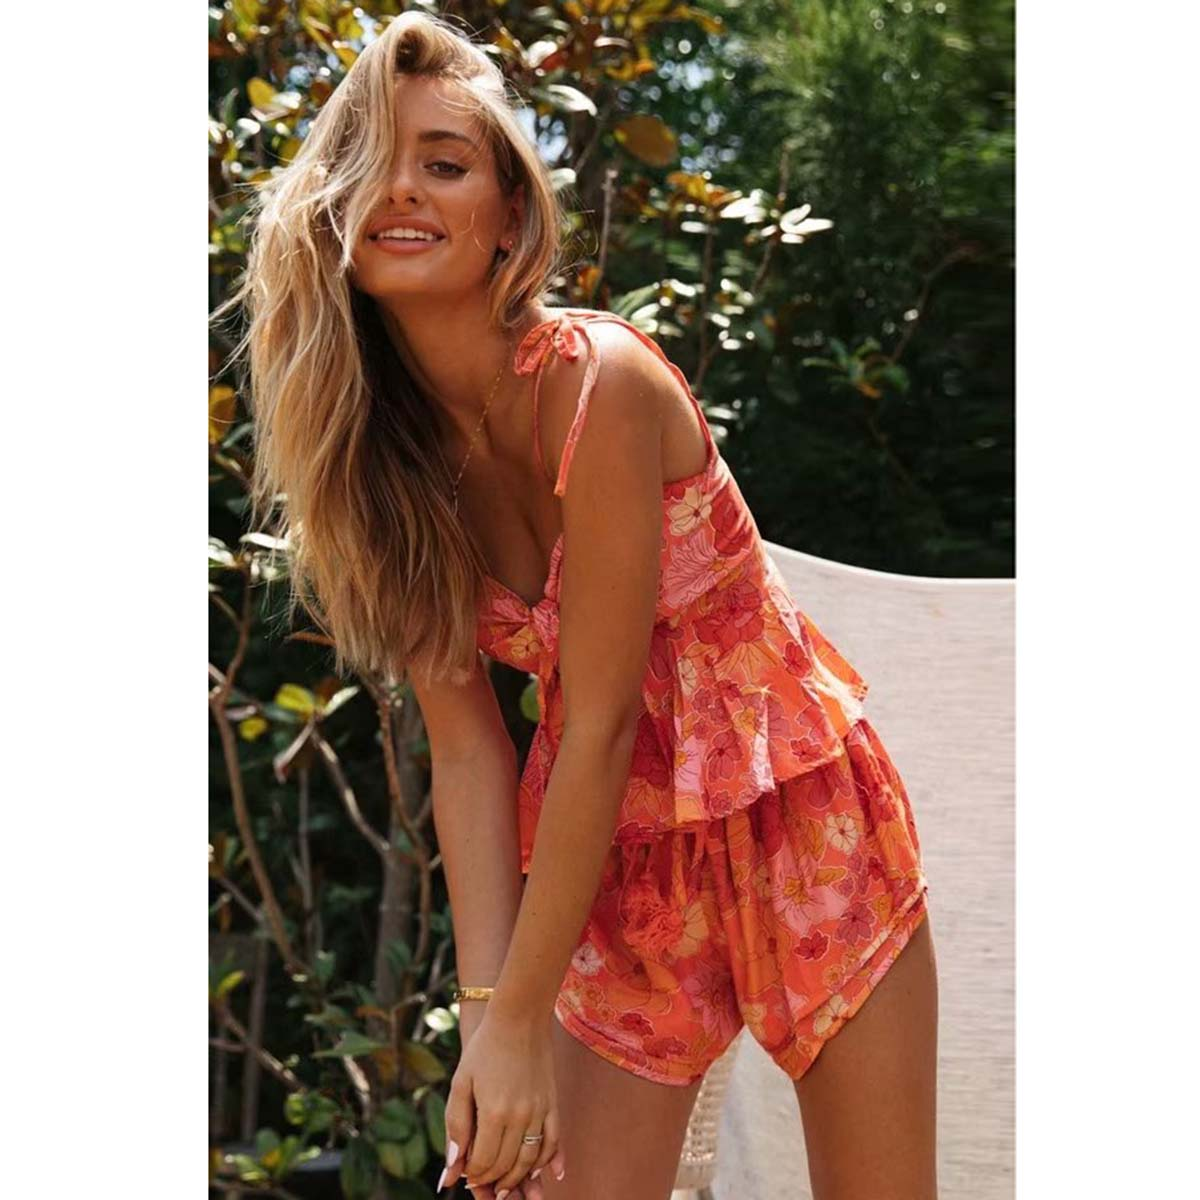 'Peachy' Bohemian Orange And Pink Floral Shorts And Singlet 2 Piece Set